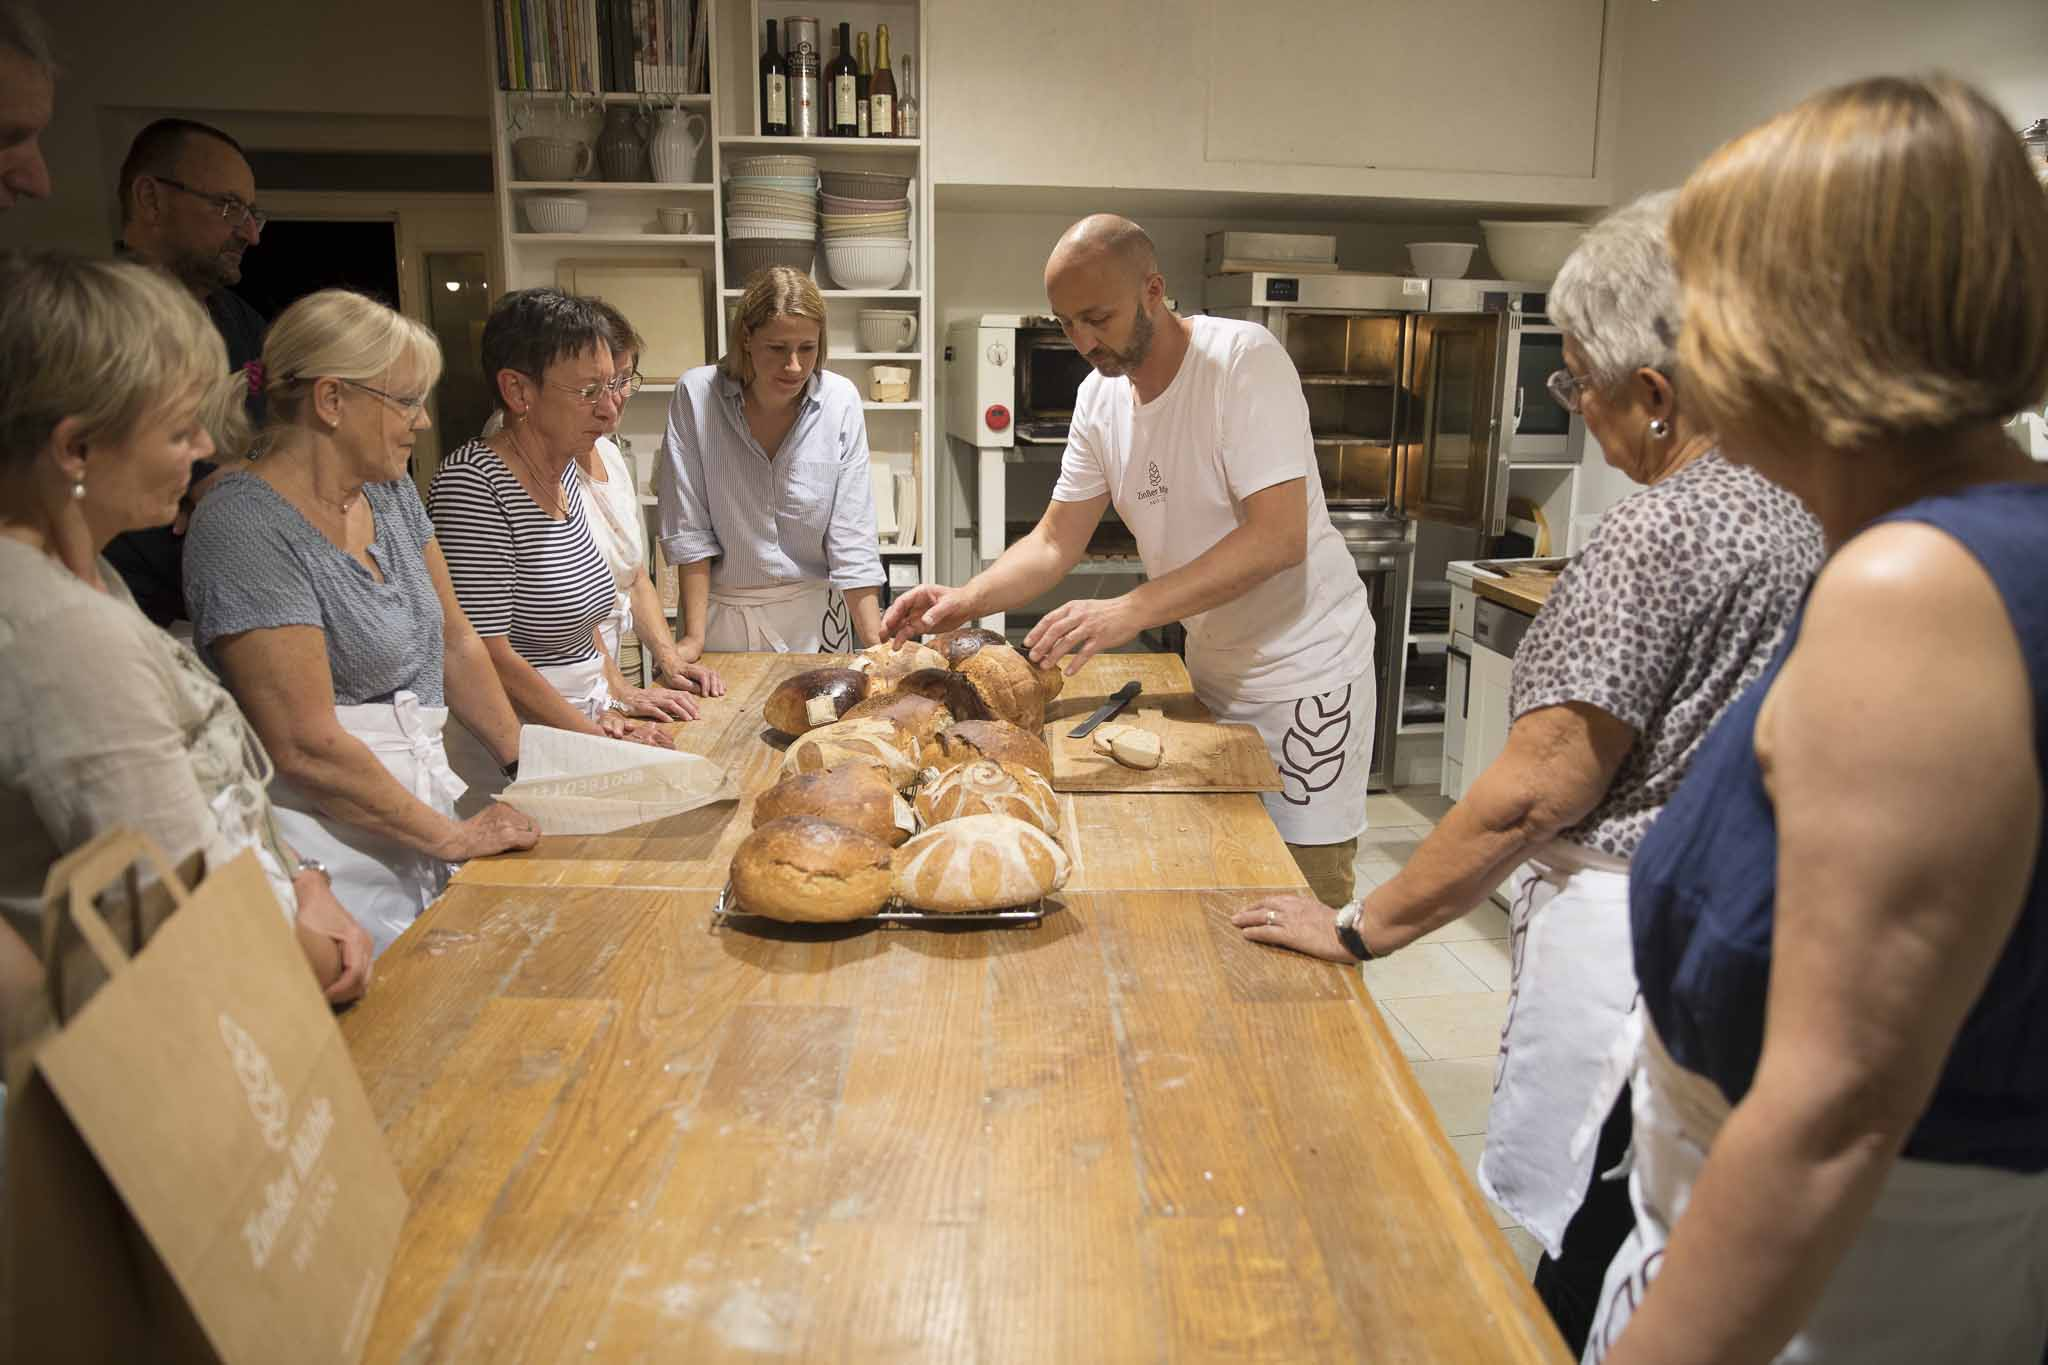 Teamevent-Brot backen Bild7